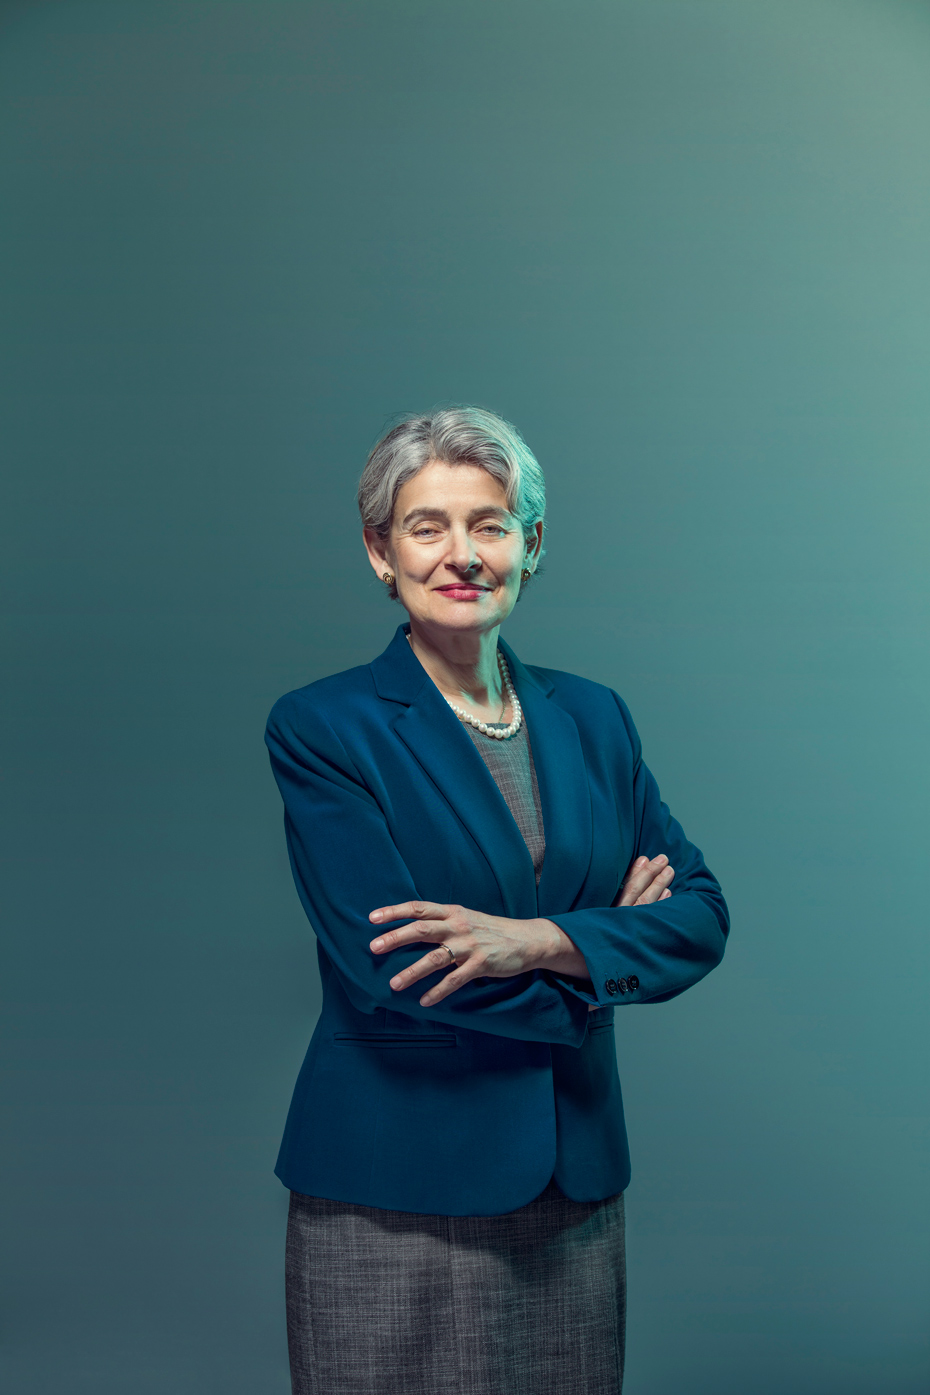 UNESCO Director Irina Bokova .  The Guardian | On Location